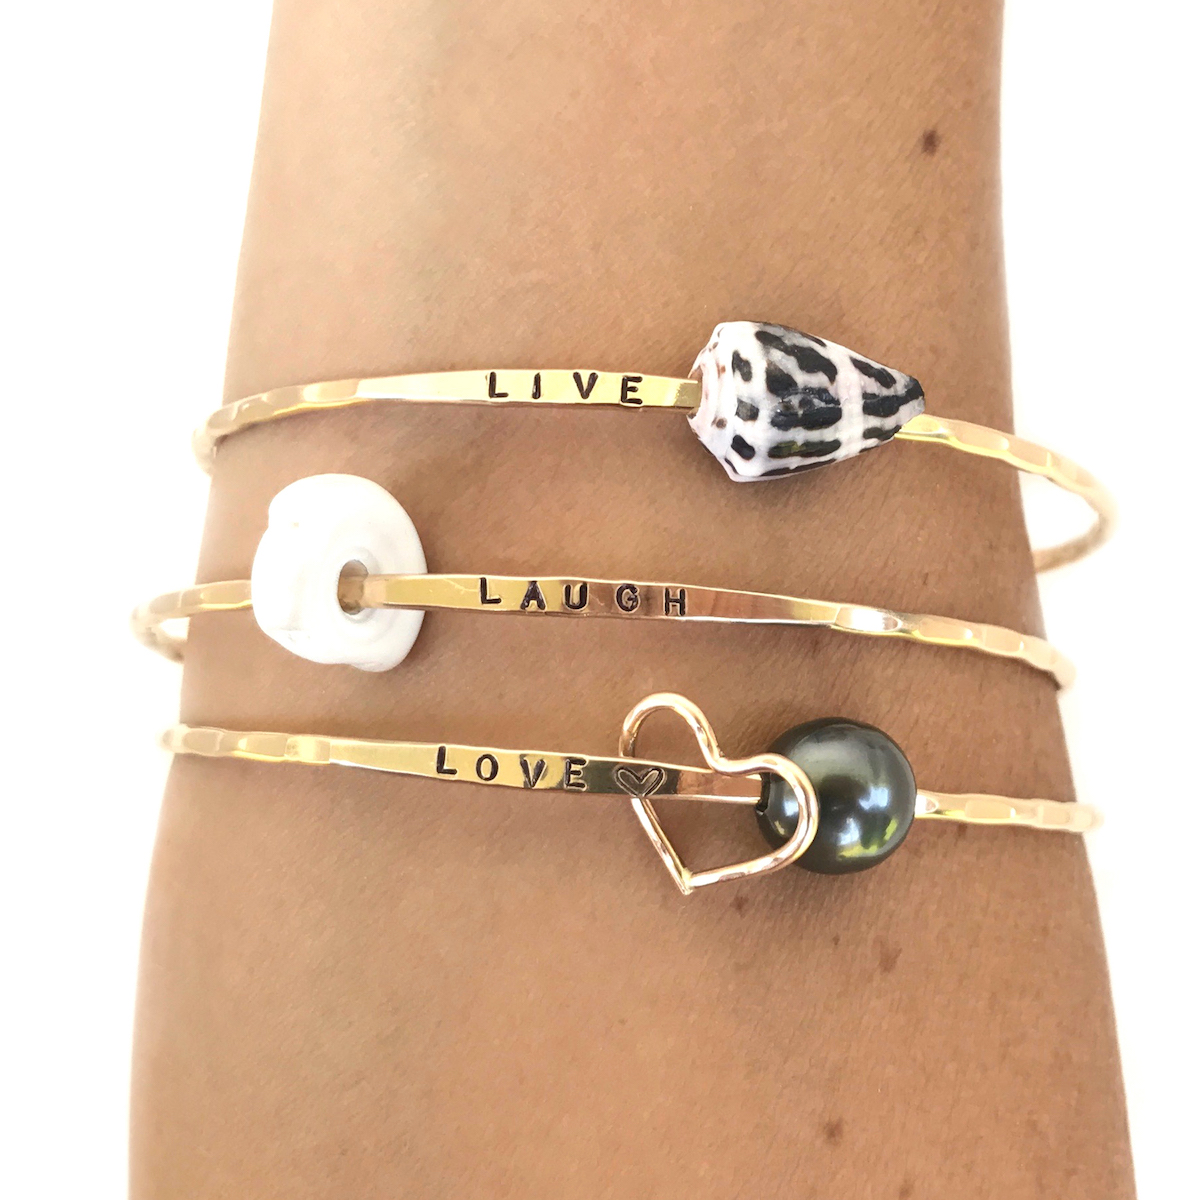 styled bangles words hope hollow bangle love cut out in gold letters shop dream paris